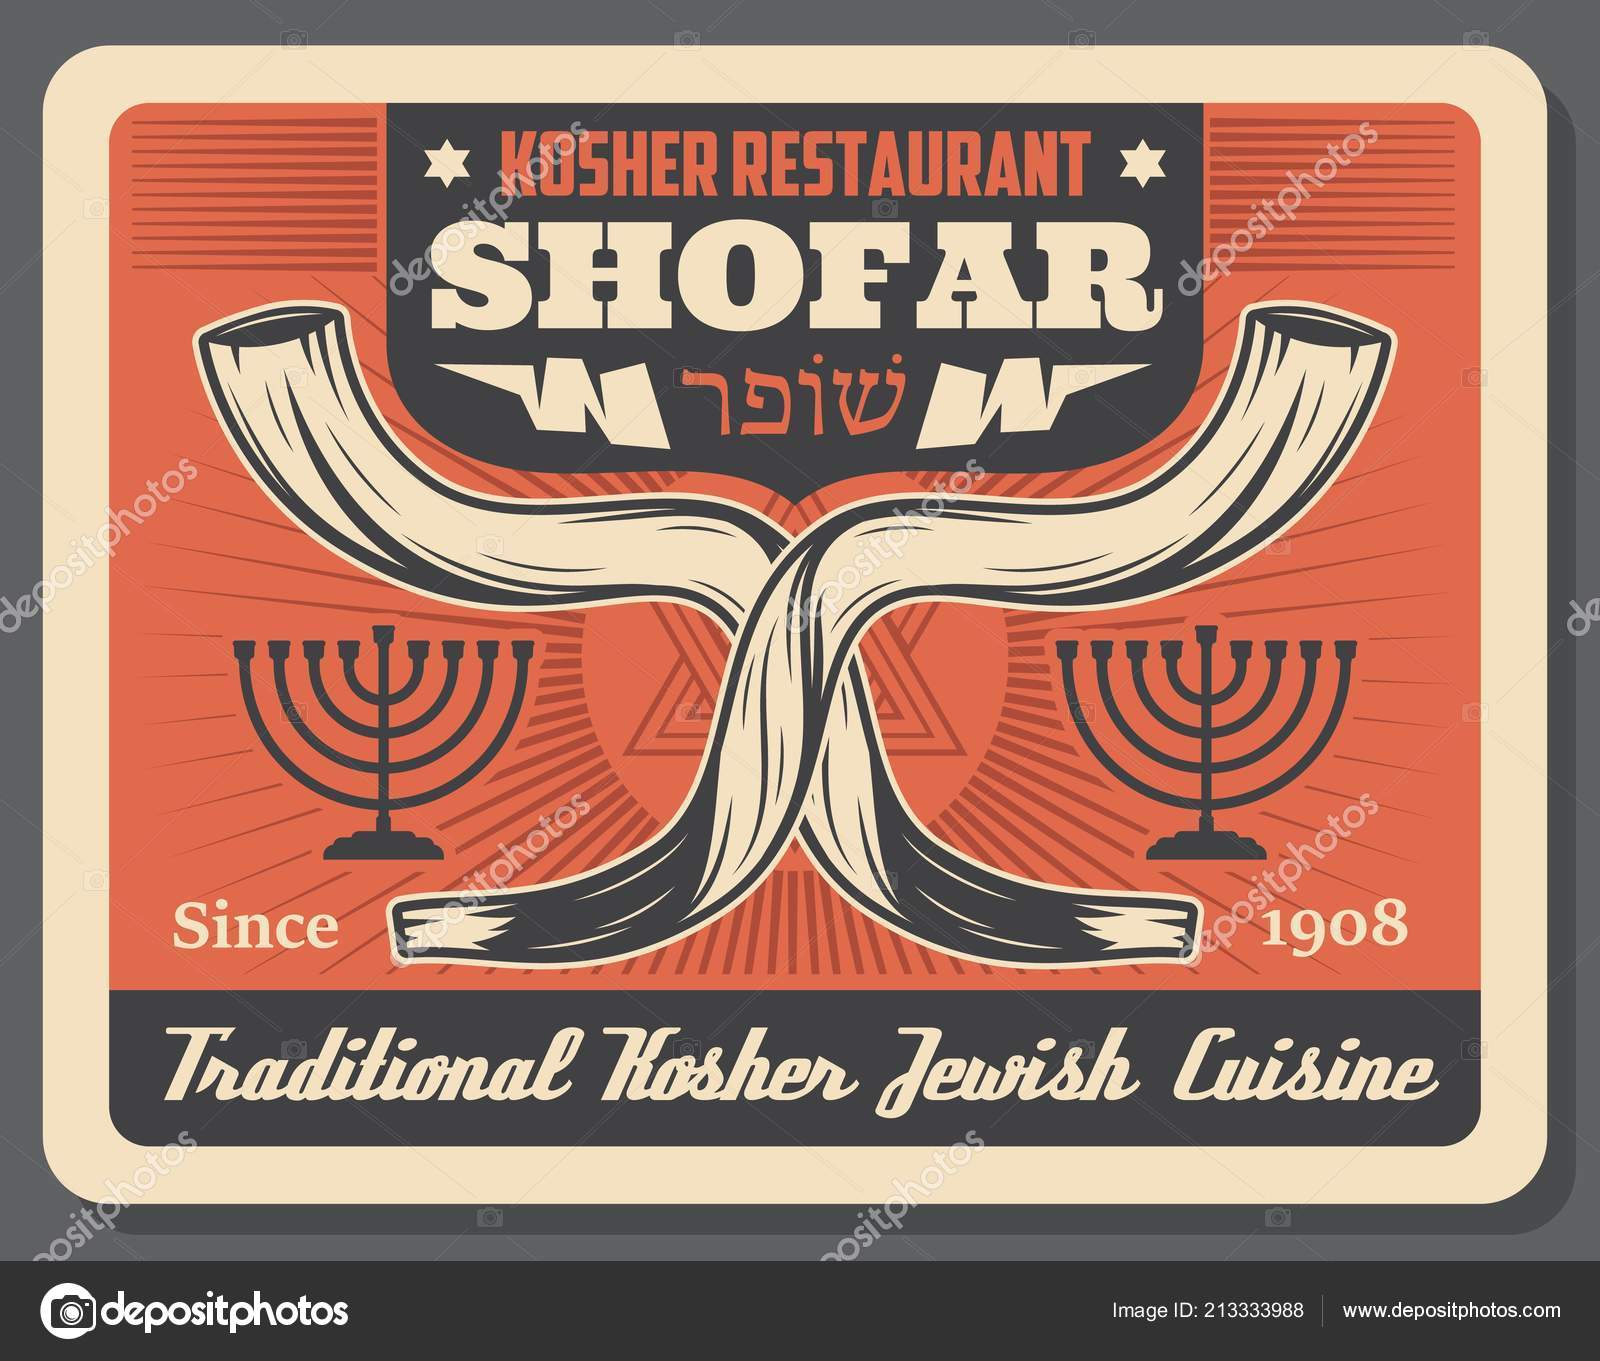 Poster Cuisine Jewish Traditional Kosher Restaurant Poster Stock Vector